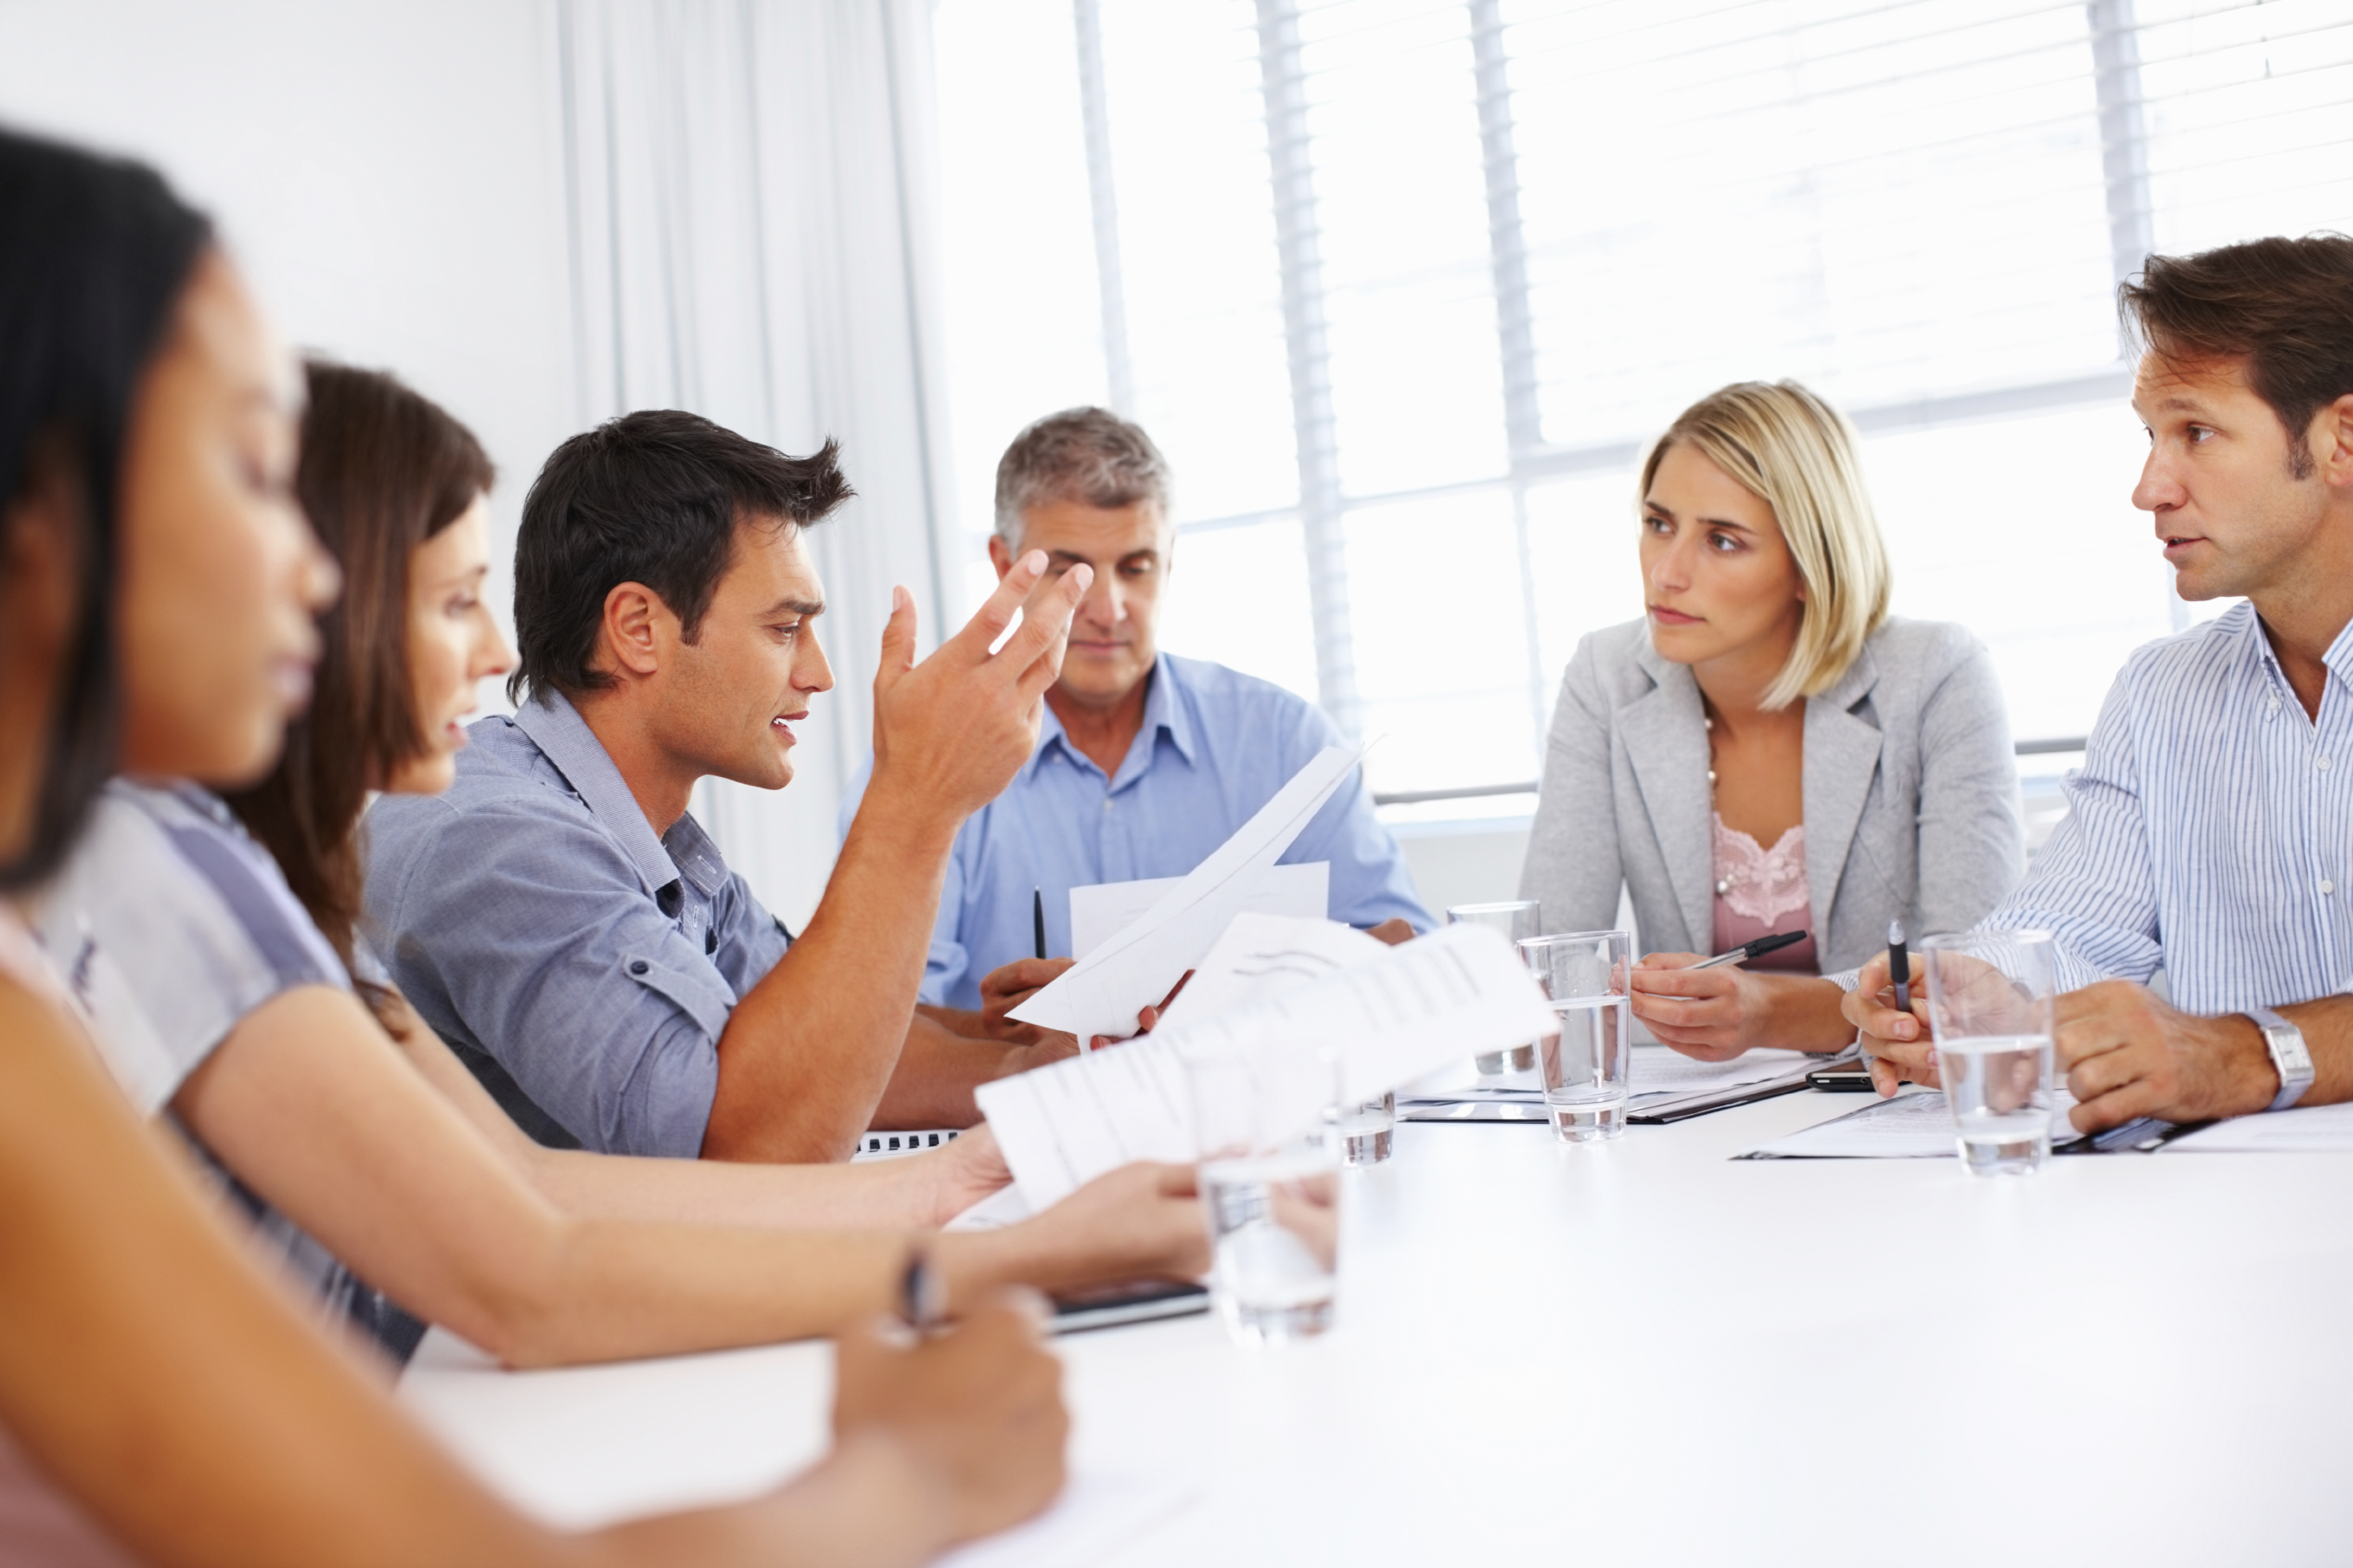 14 Meeting Stock Photography Images